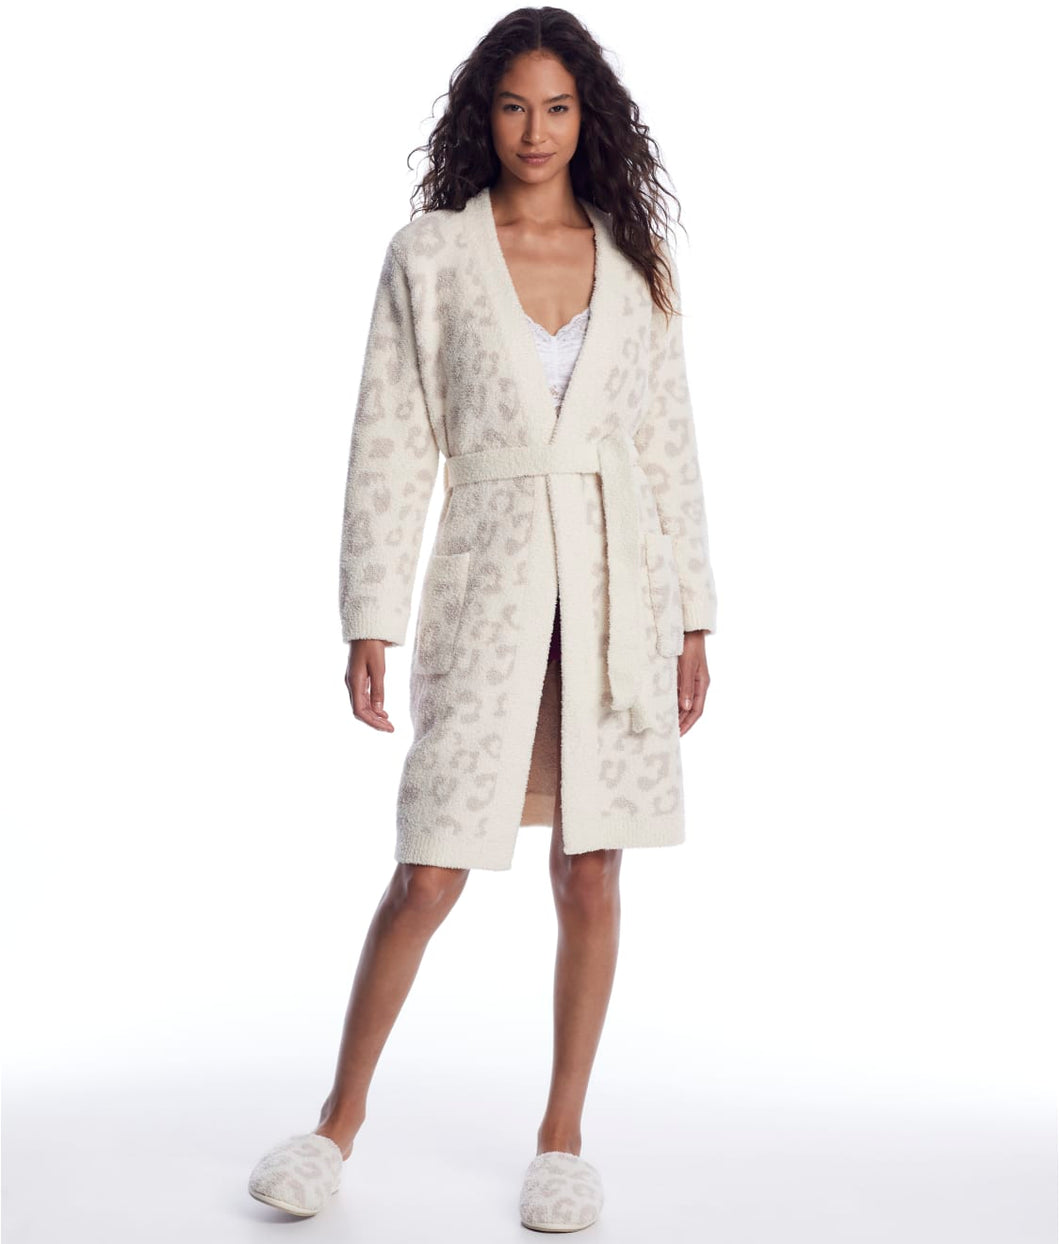 Barefoot Dreams CozyChic Women's Robe - Cream Stone